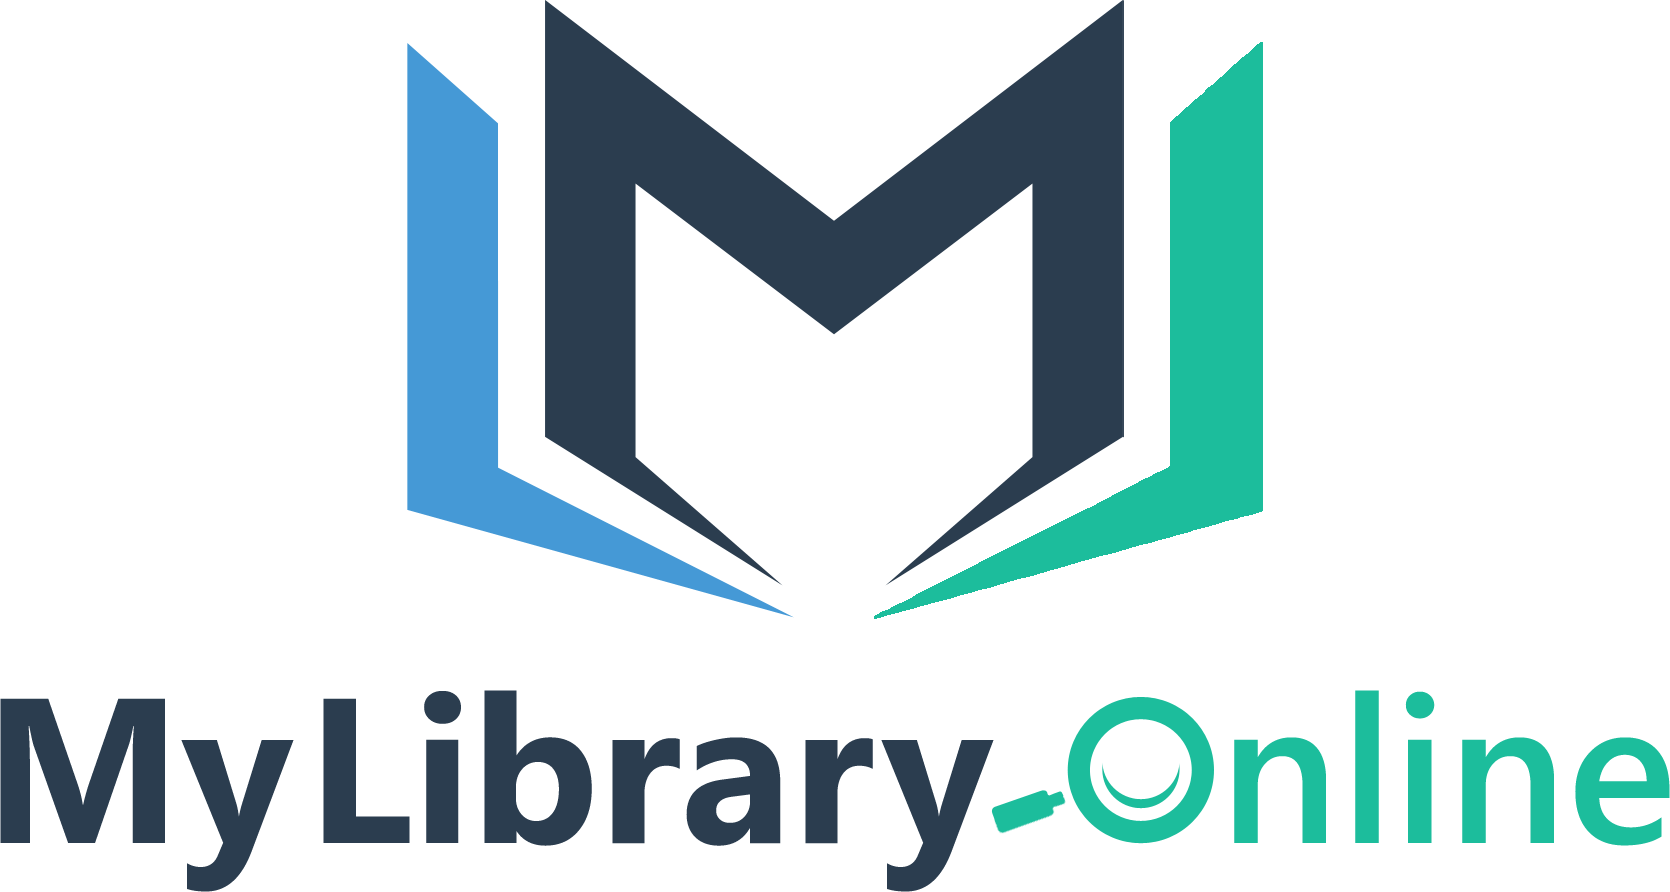 Mylibrary-Online